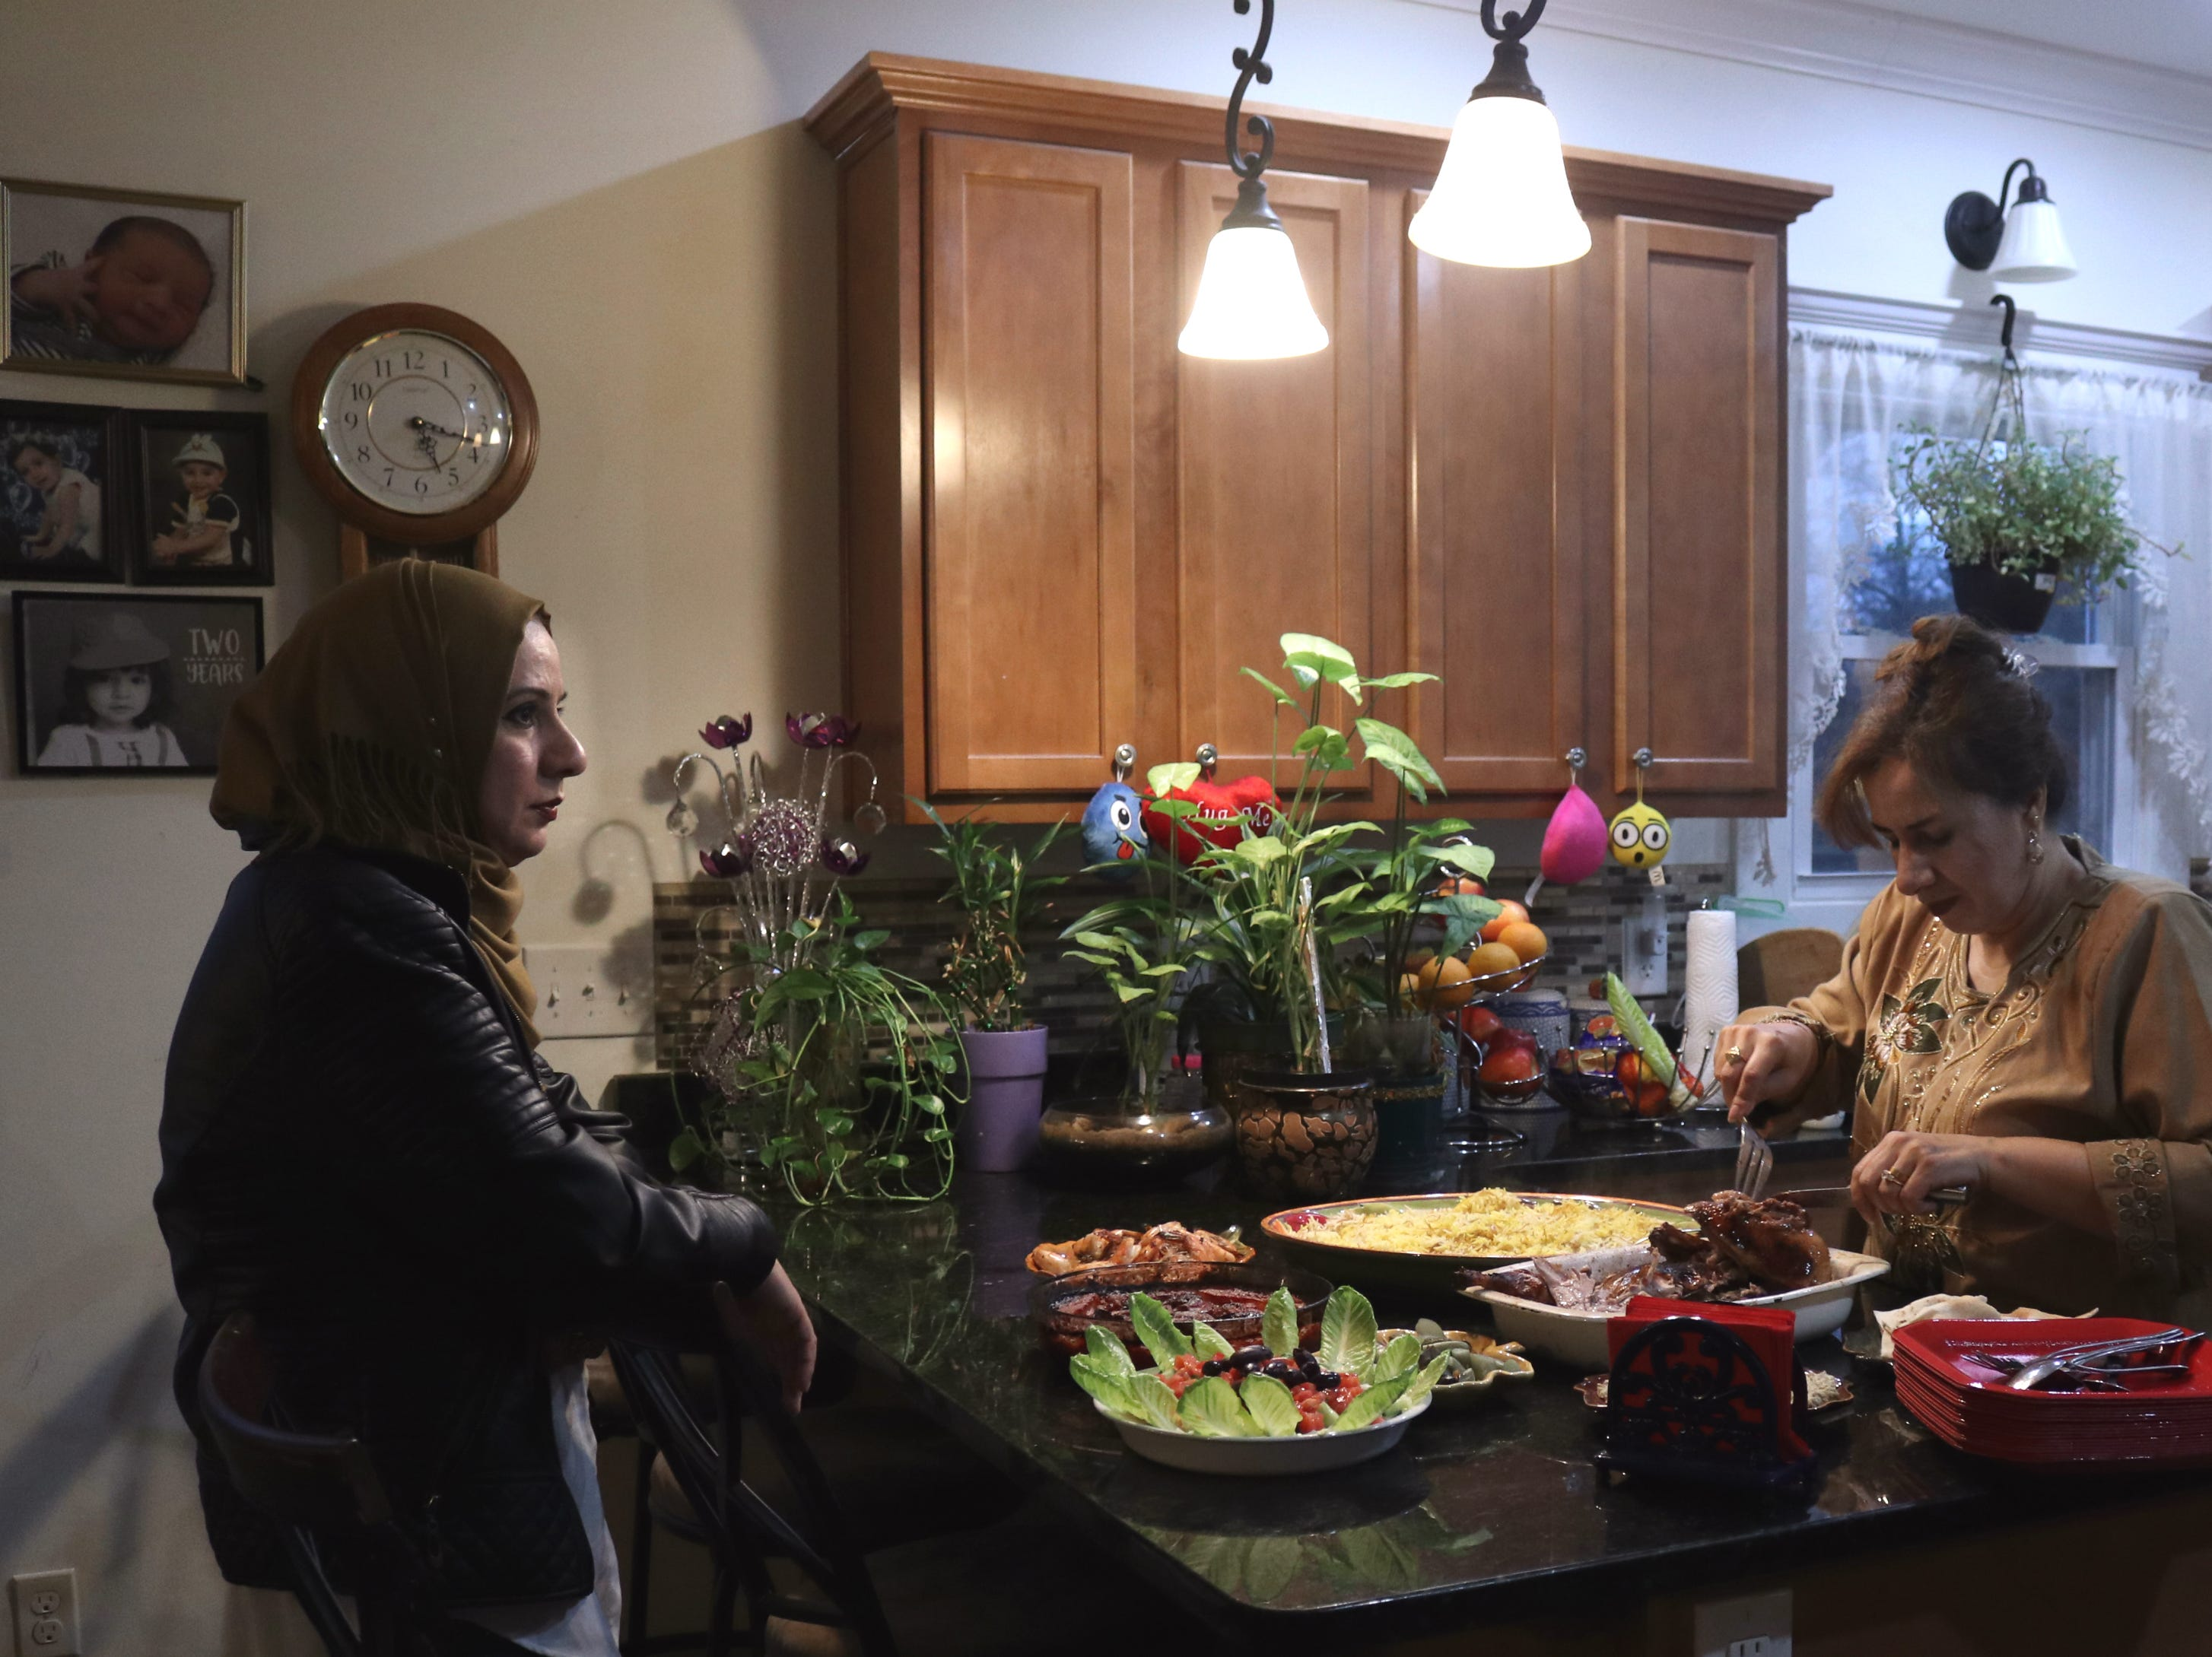 Zainab Radhi (right) made duck, rice, shrimp and roasted eggplant for dinner with her family on a recent Sunday night. She and her sister, Zina Radhi (left), said food is very important to Iraqi culture.